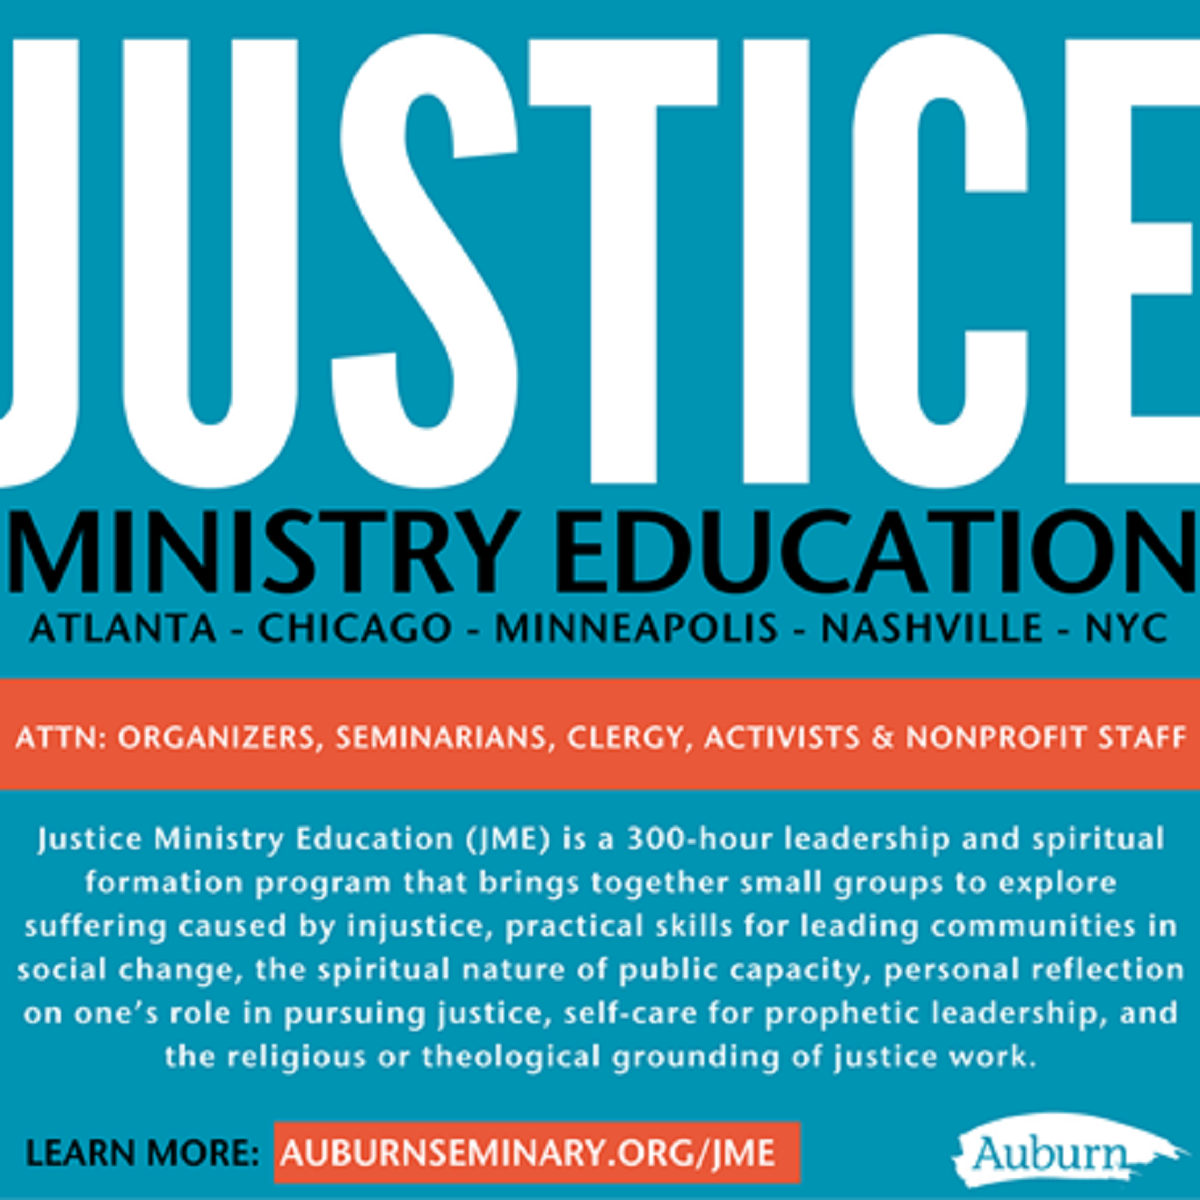 Justice Ministry Education certificate from Auburn Seminary